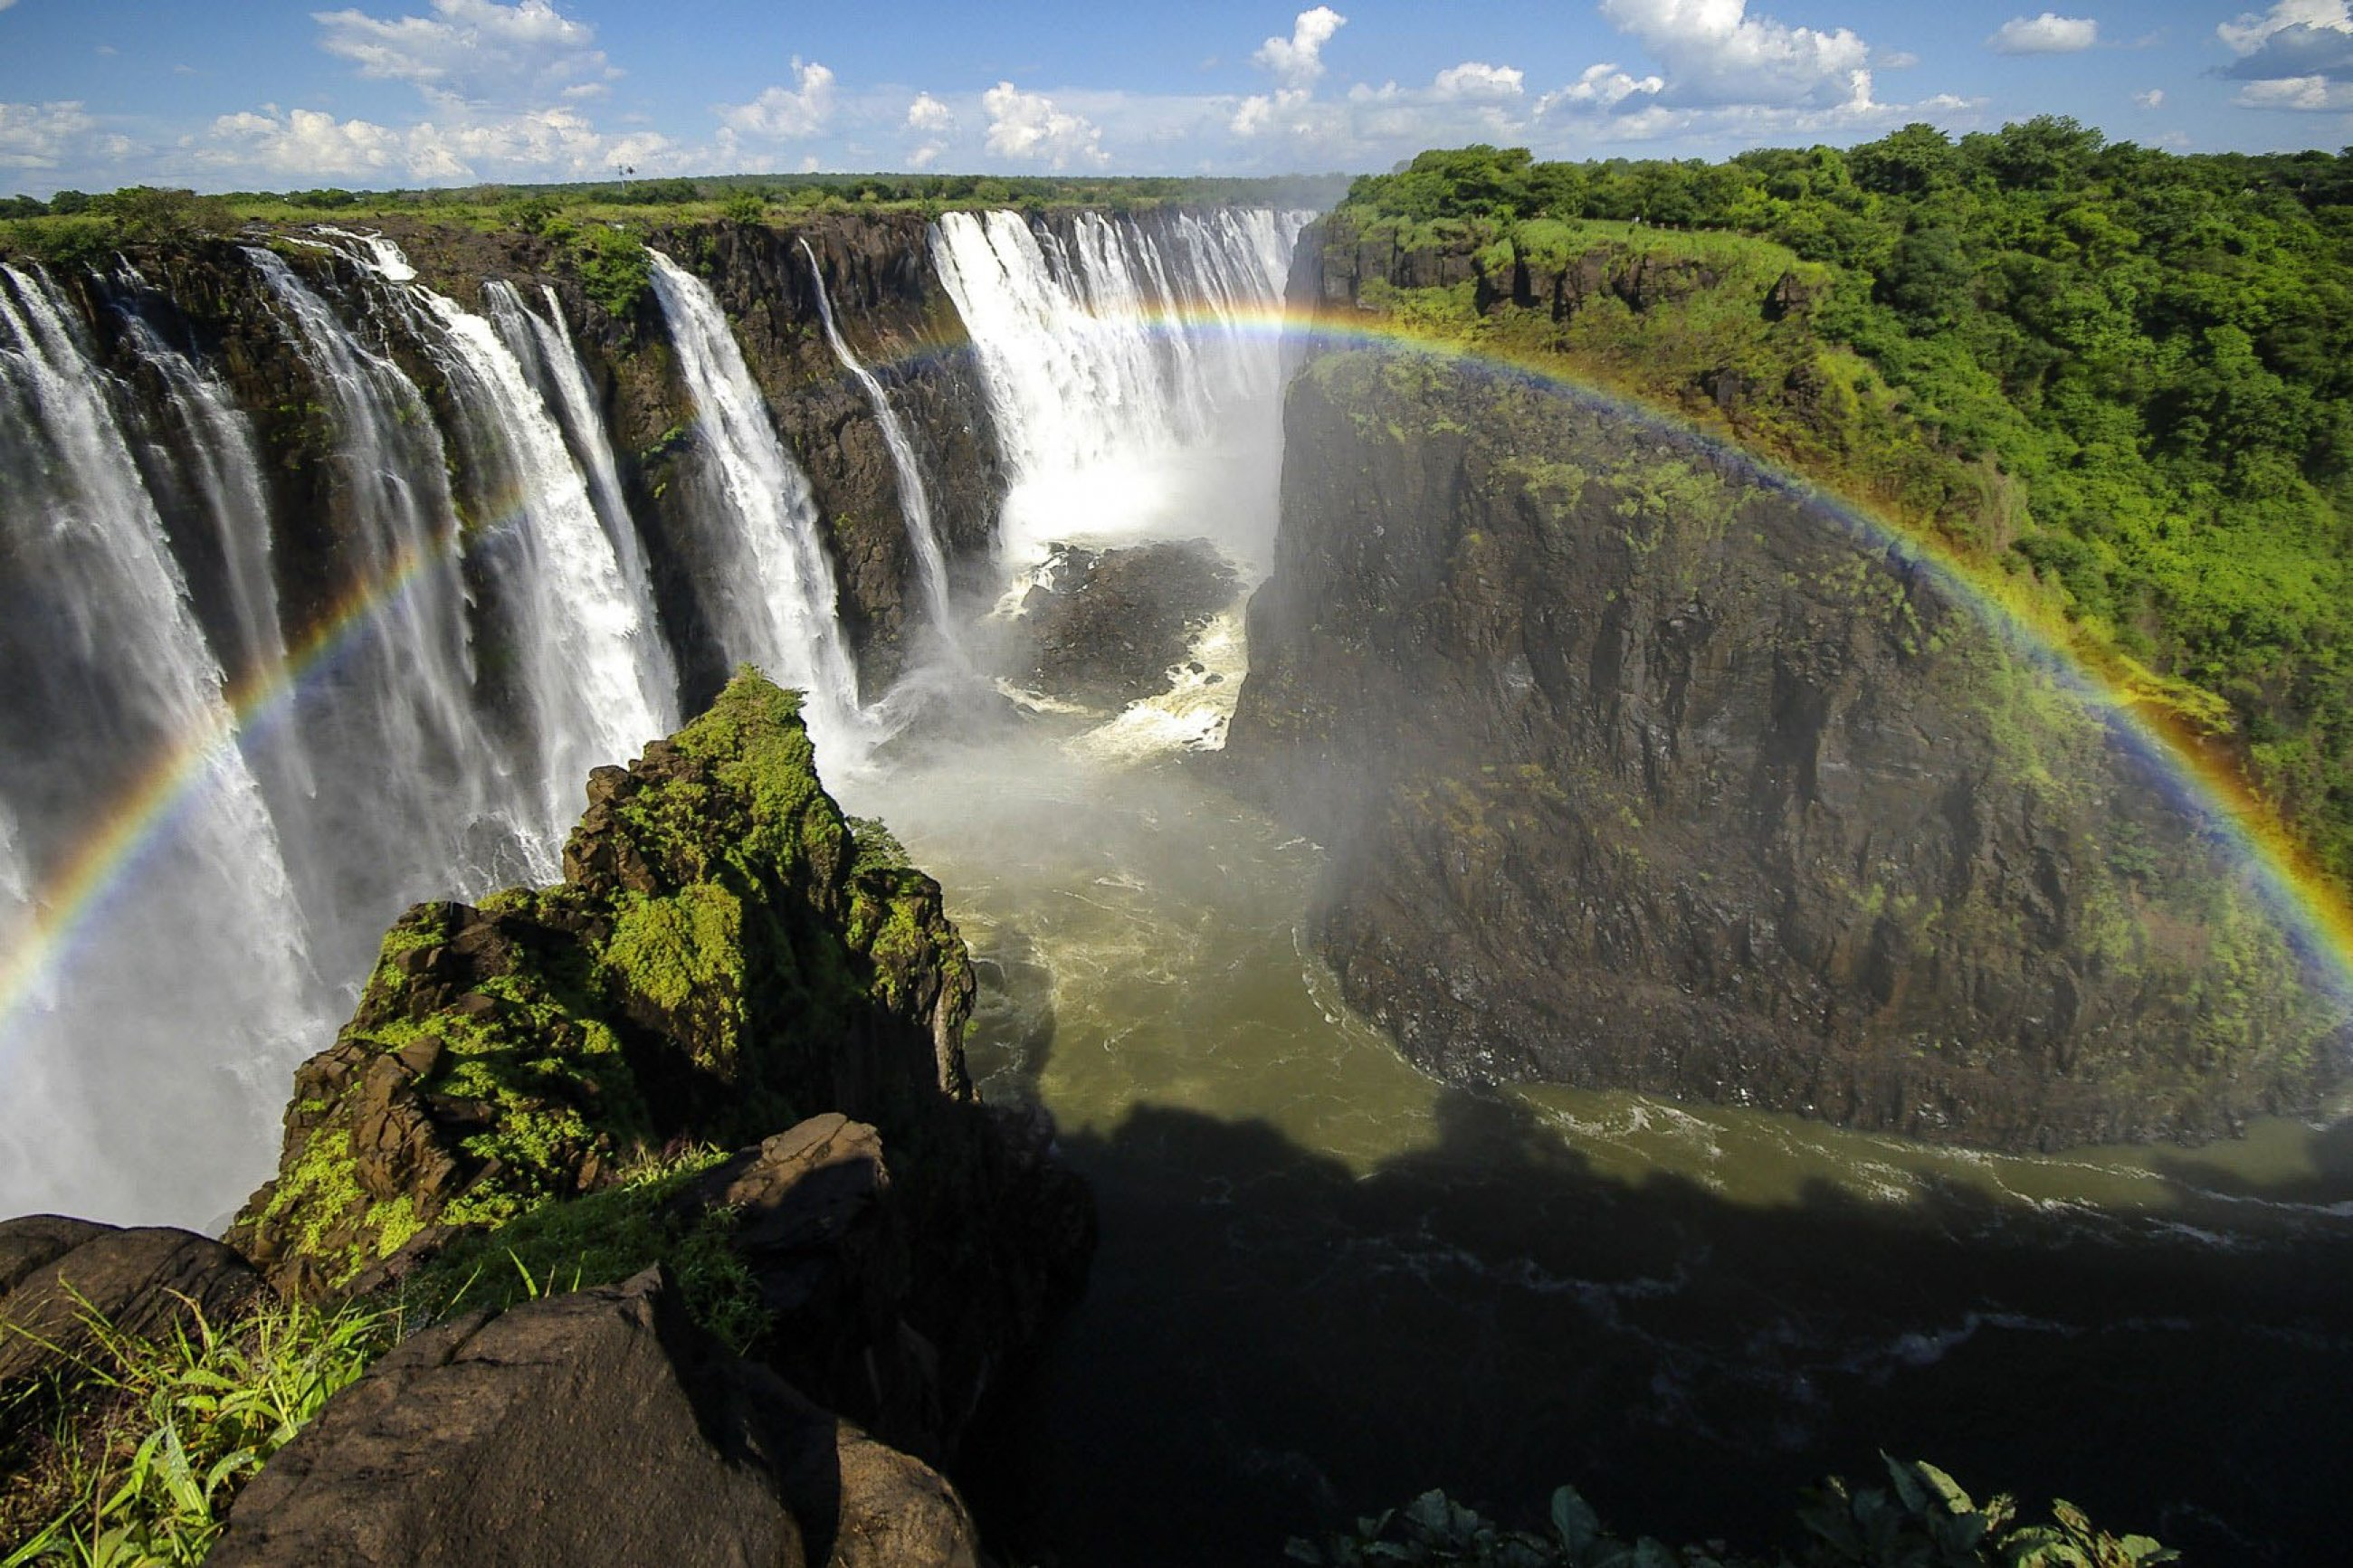 https://bubo.sk/uploads/galleries/7504/victoria-falls-dreamstime-xl-36170966.jpg